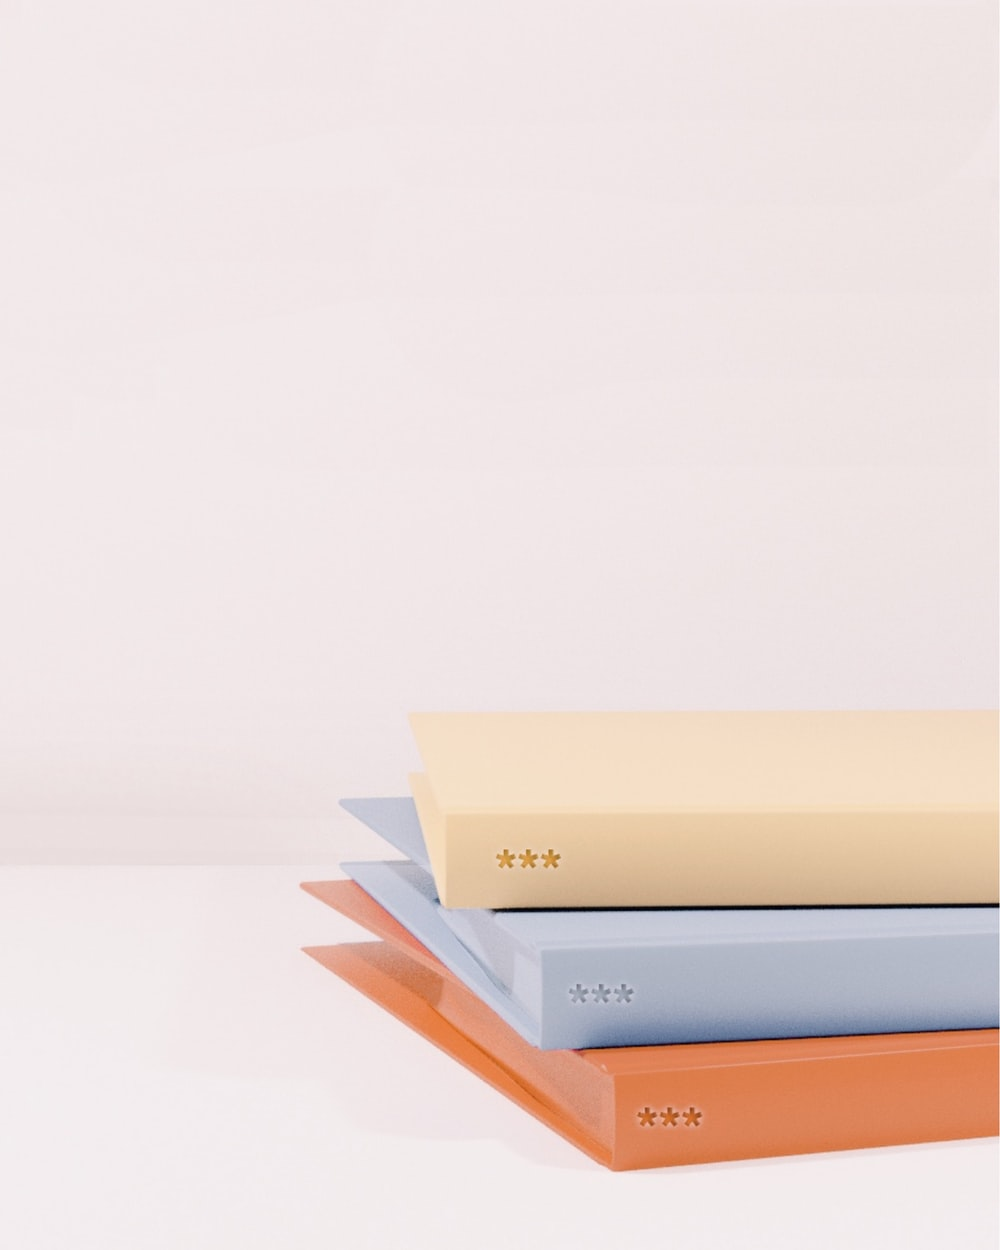 stack of books on white table